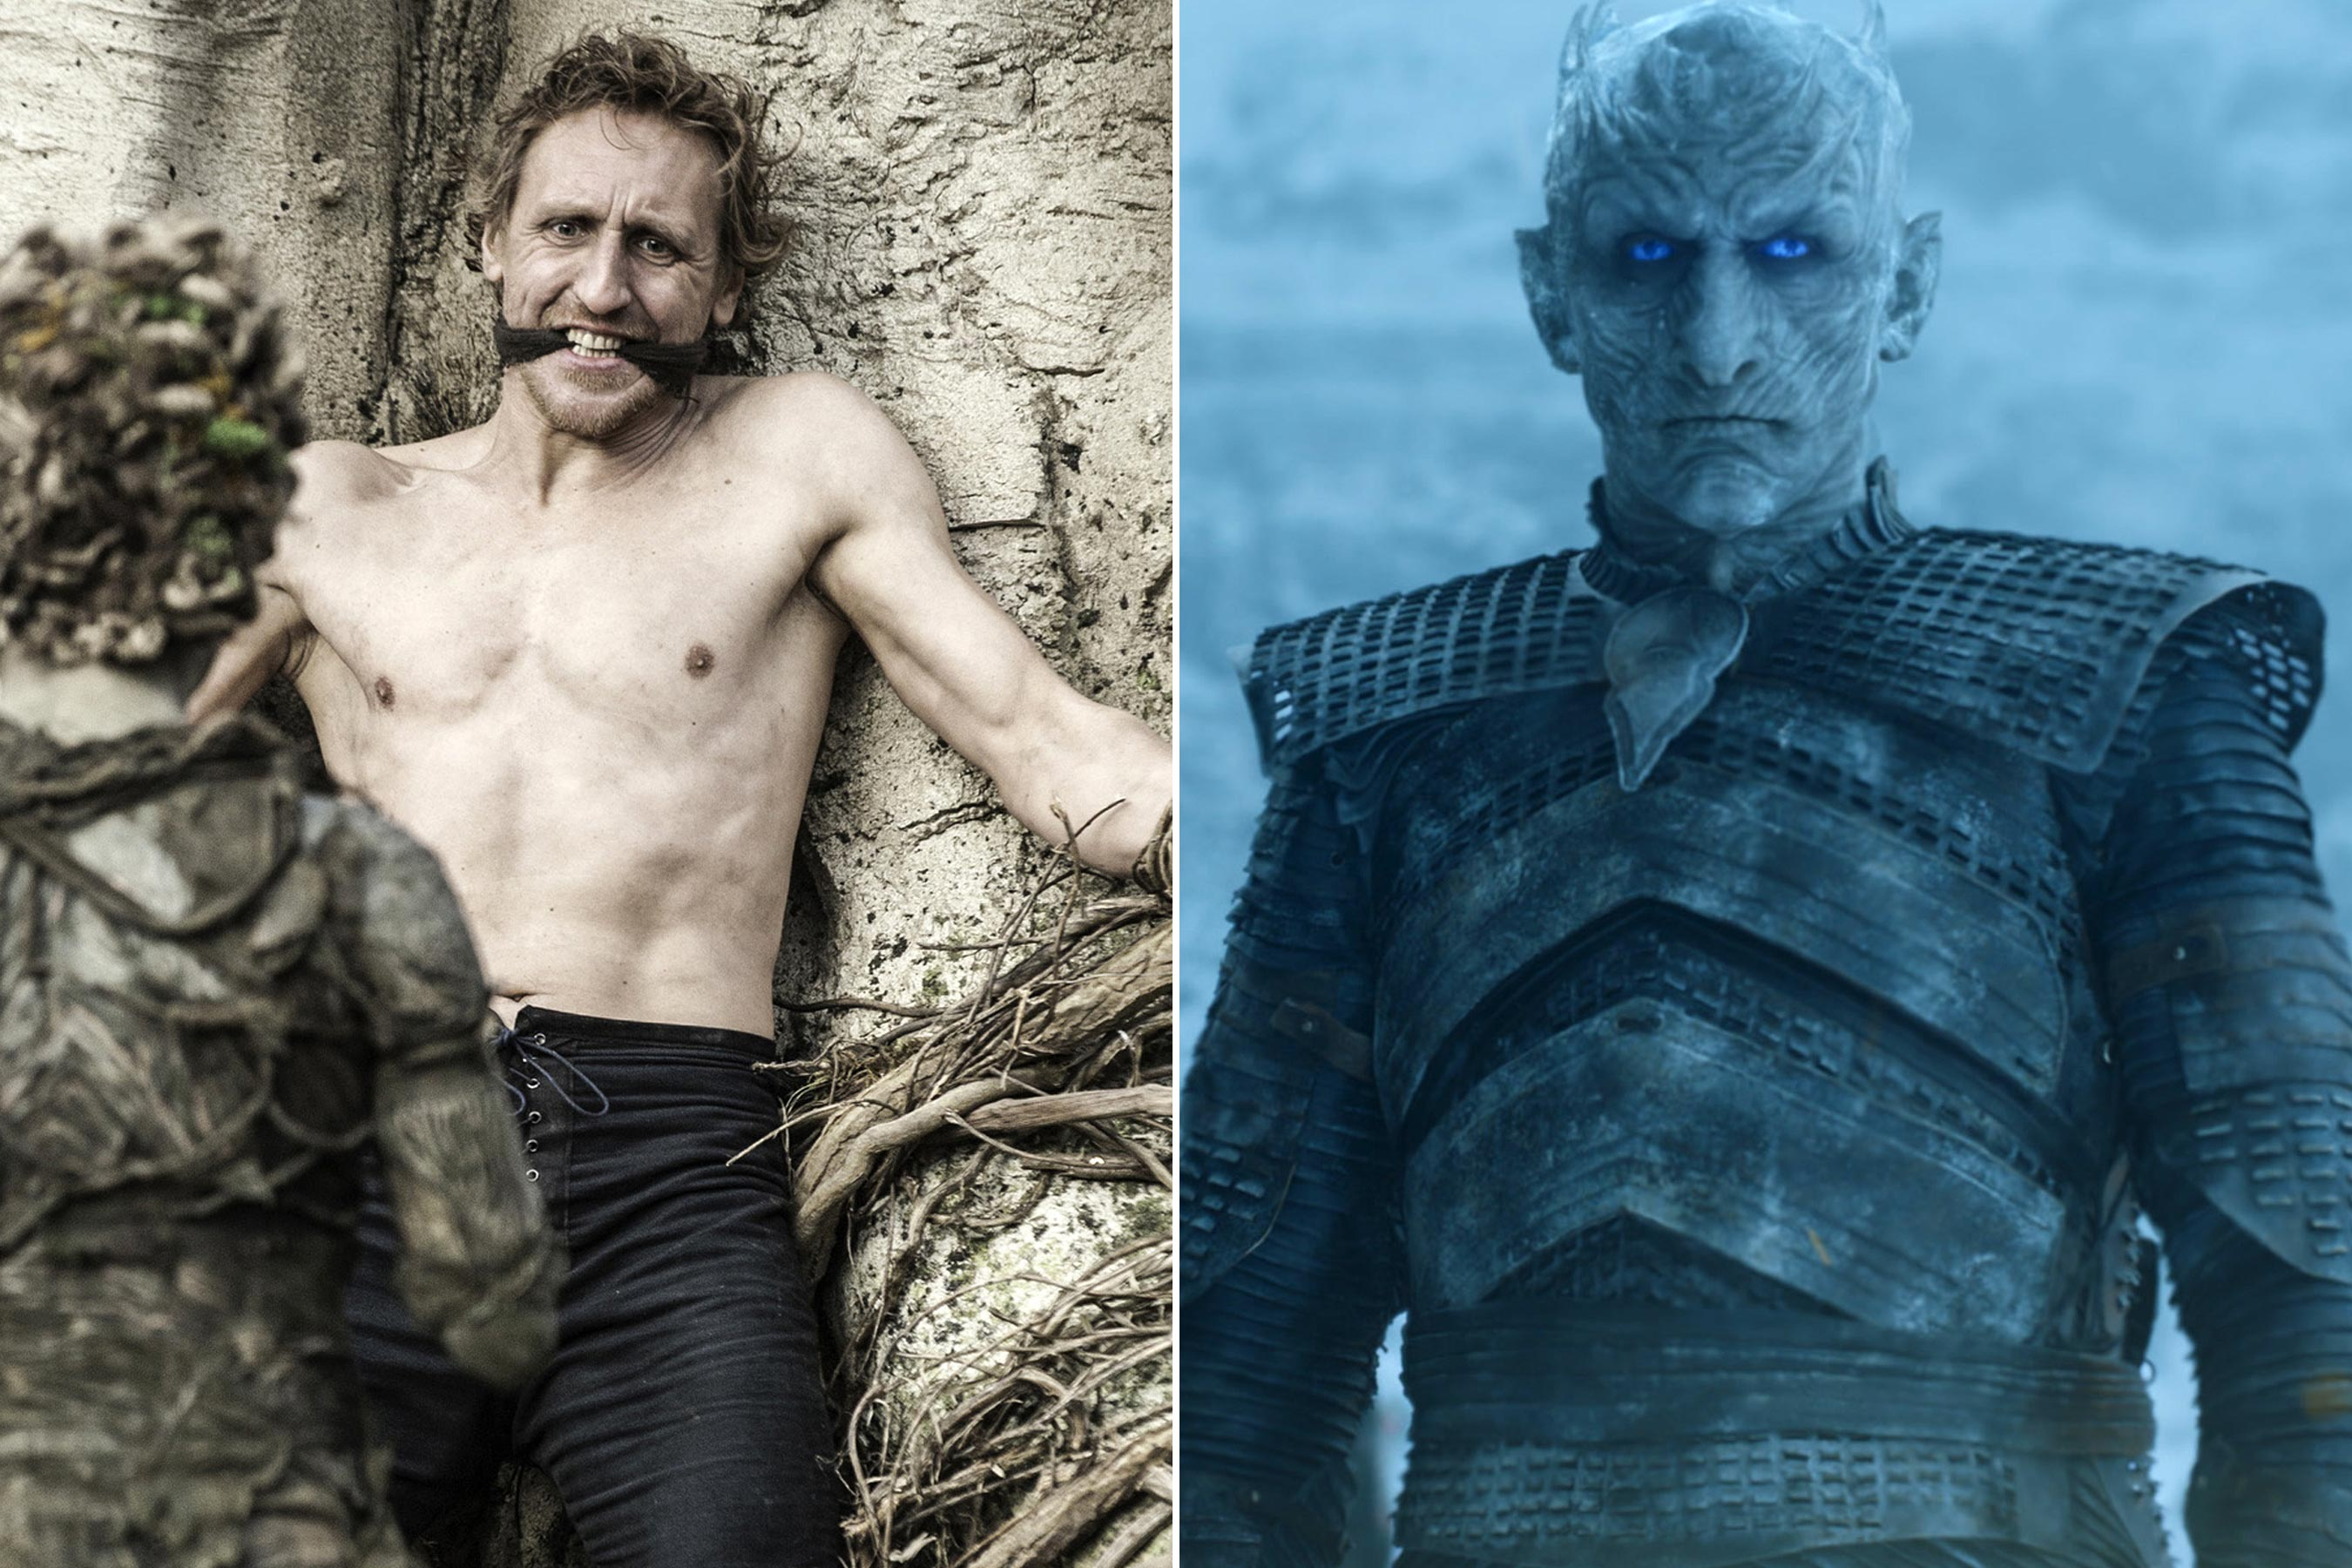 Game of Thrones prequel GOT spin-off